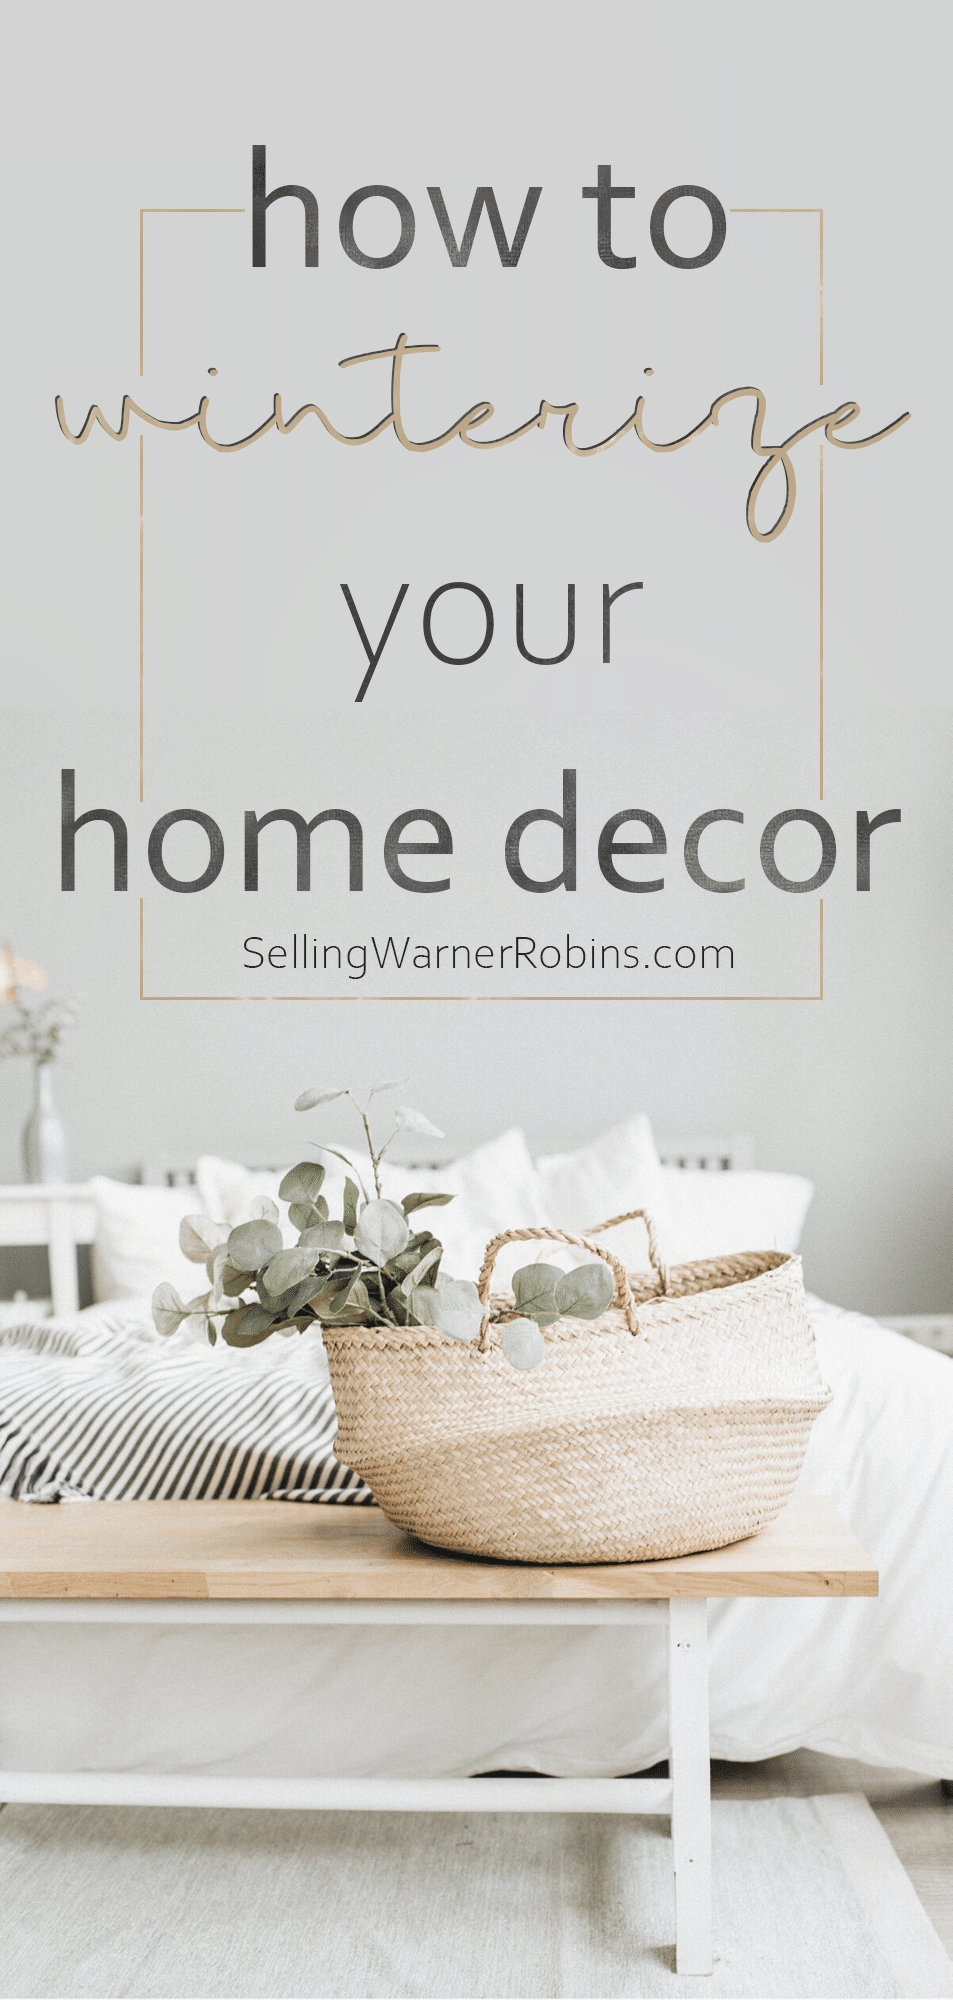 Are you wondering how you can transition your home's decor from Christmas to winter? Check out my ten ideas on how to winterize your home's decor this season. #realestate #homestaging #winterdecor #winterdecorating